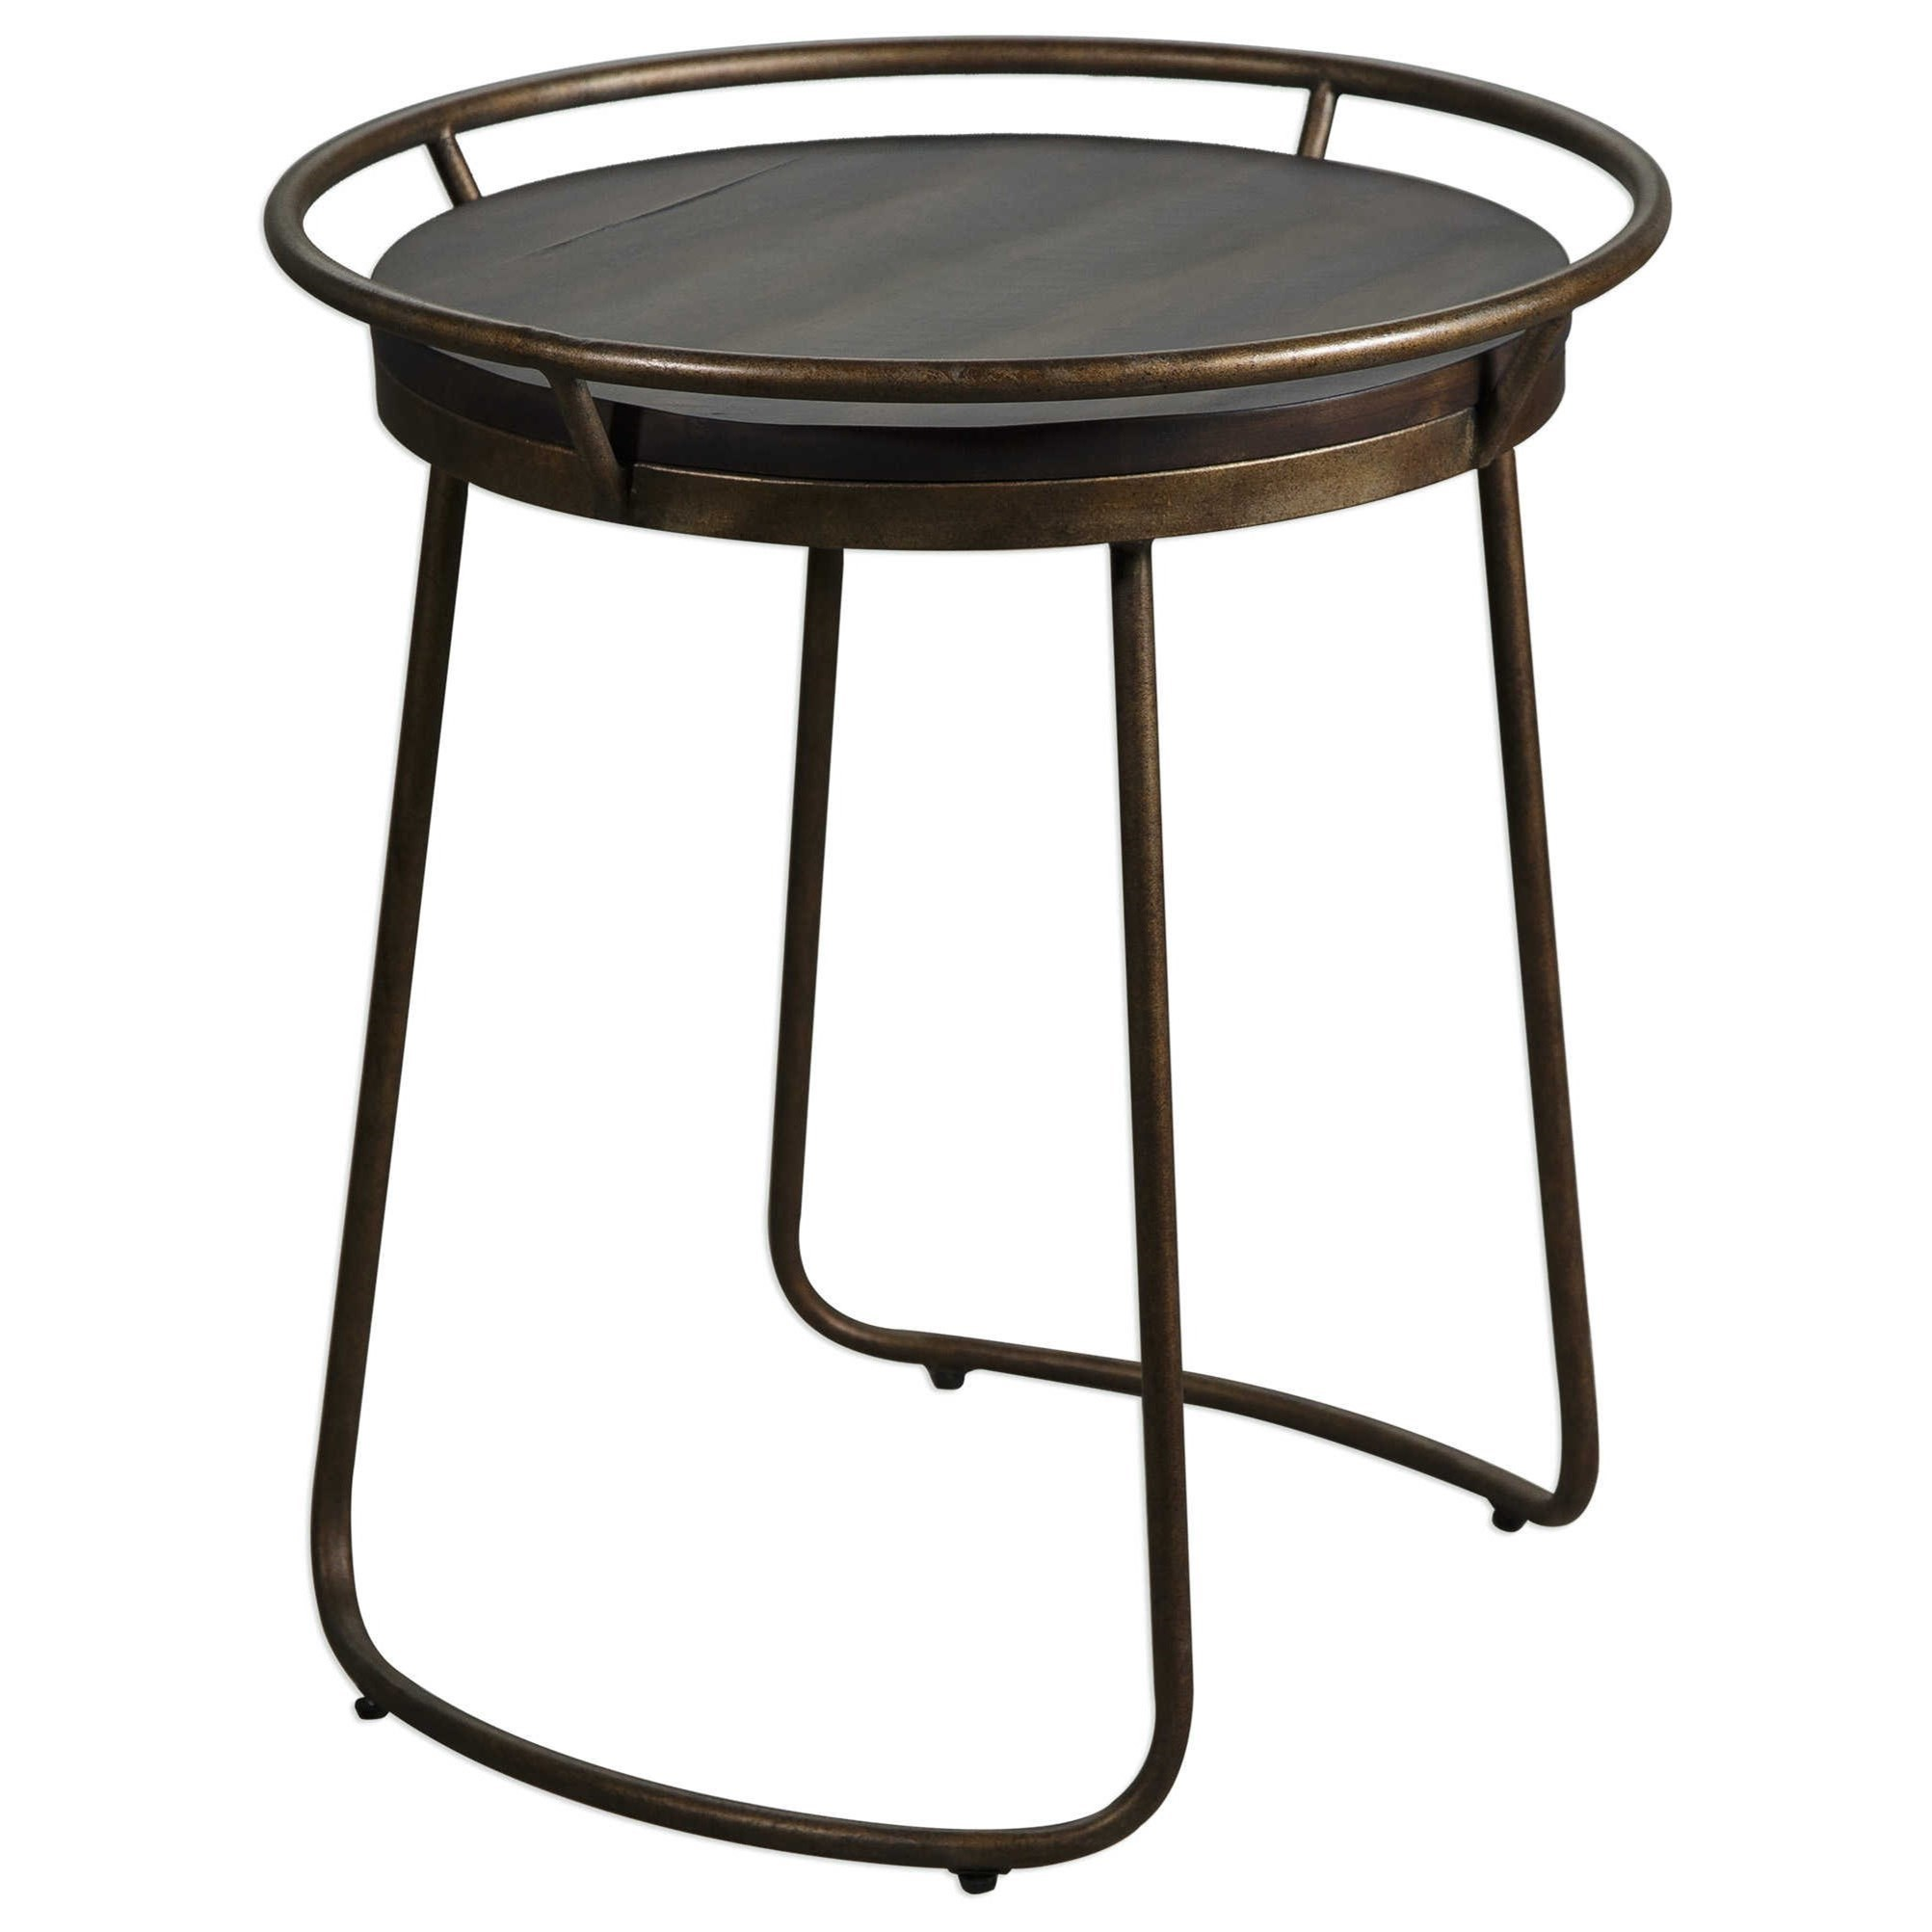 uttermost accent furniture rayen round table suburban products color martel slim bedside cabinets side plans iron company outdoor dining with umbrella covers pennington sage